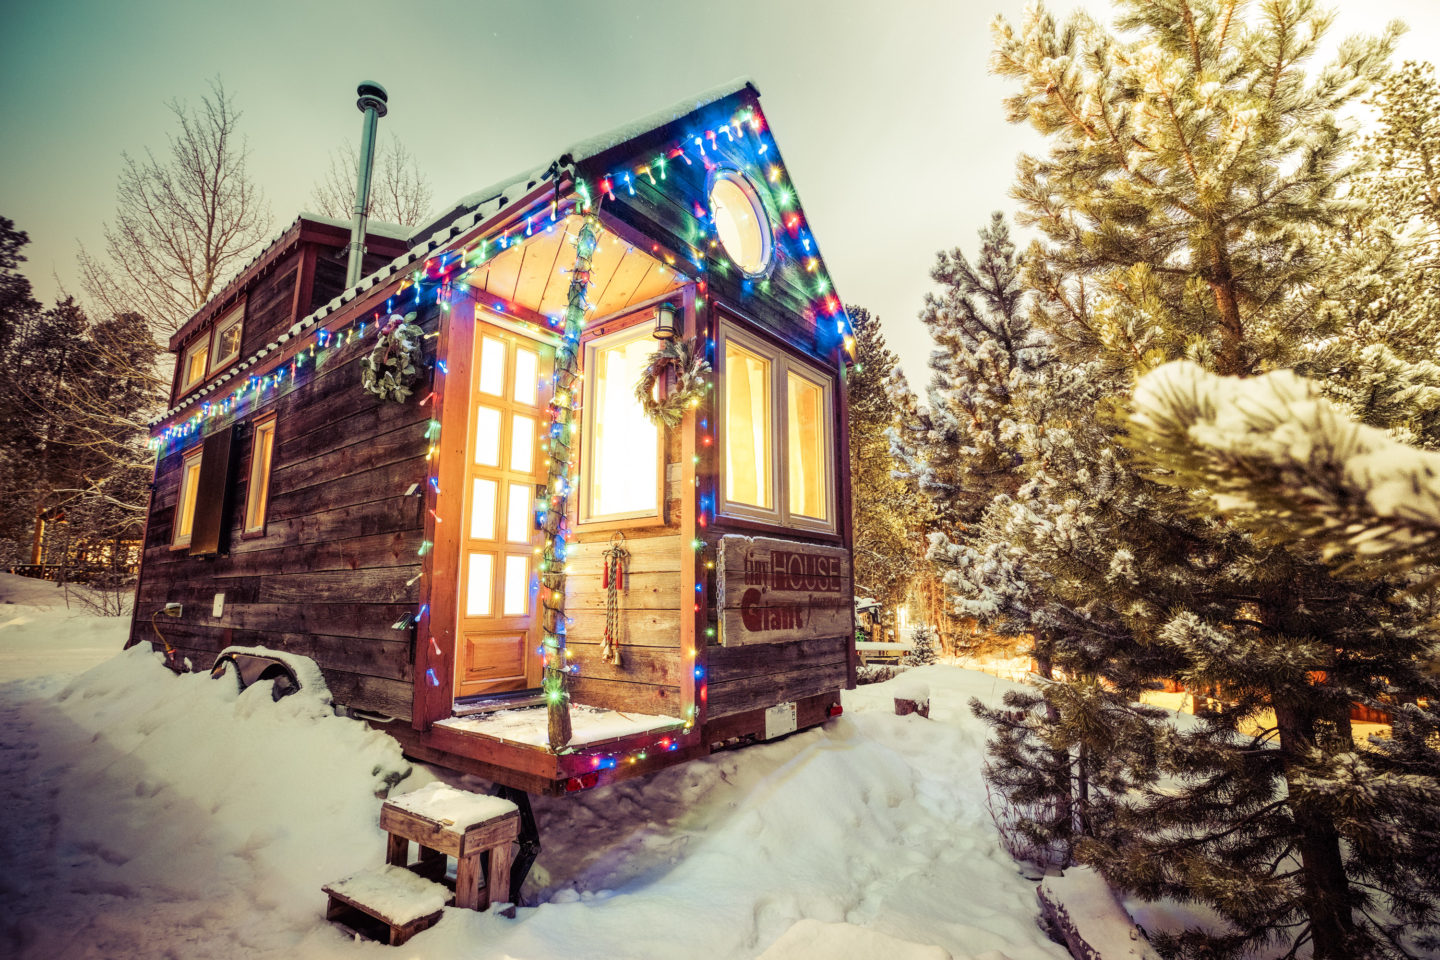 Tiny House Gifts for the Holidays